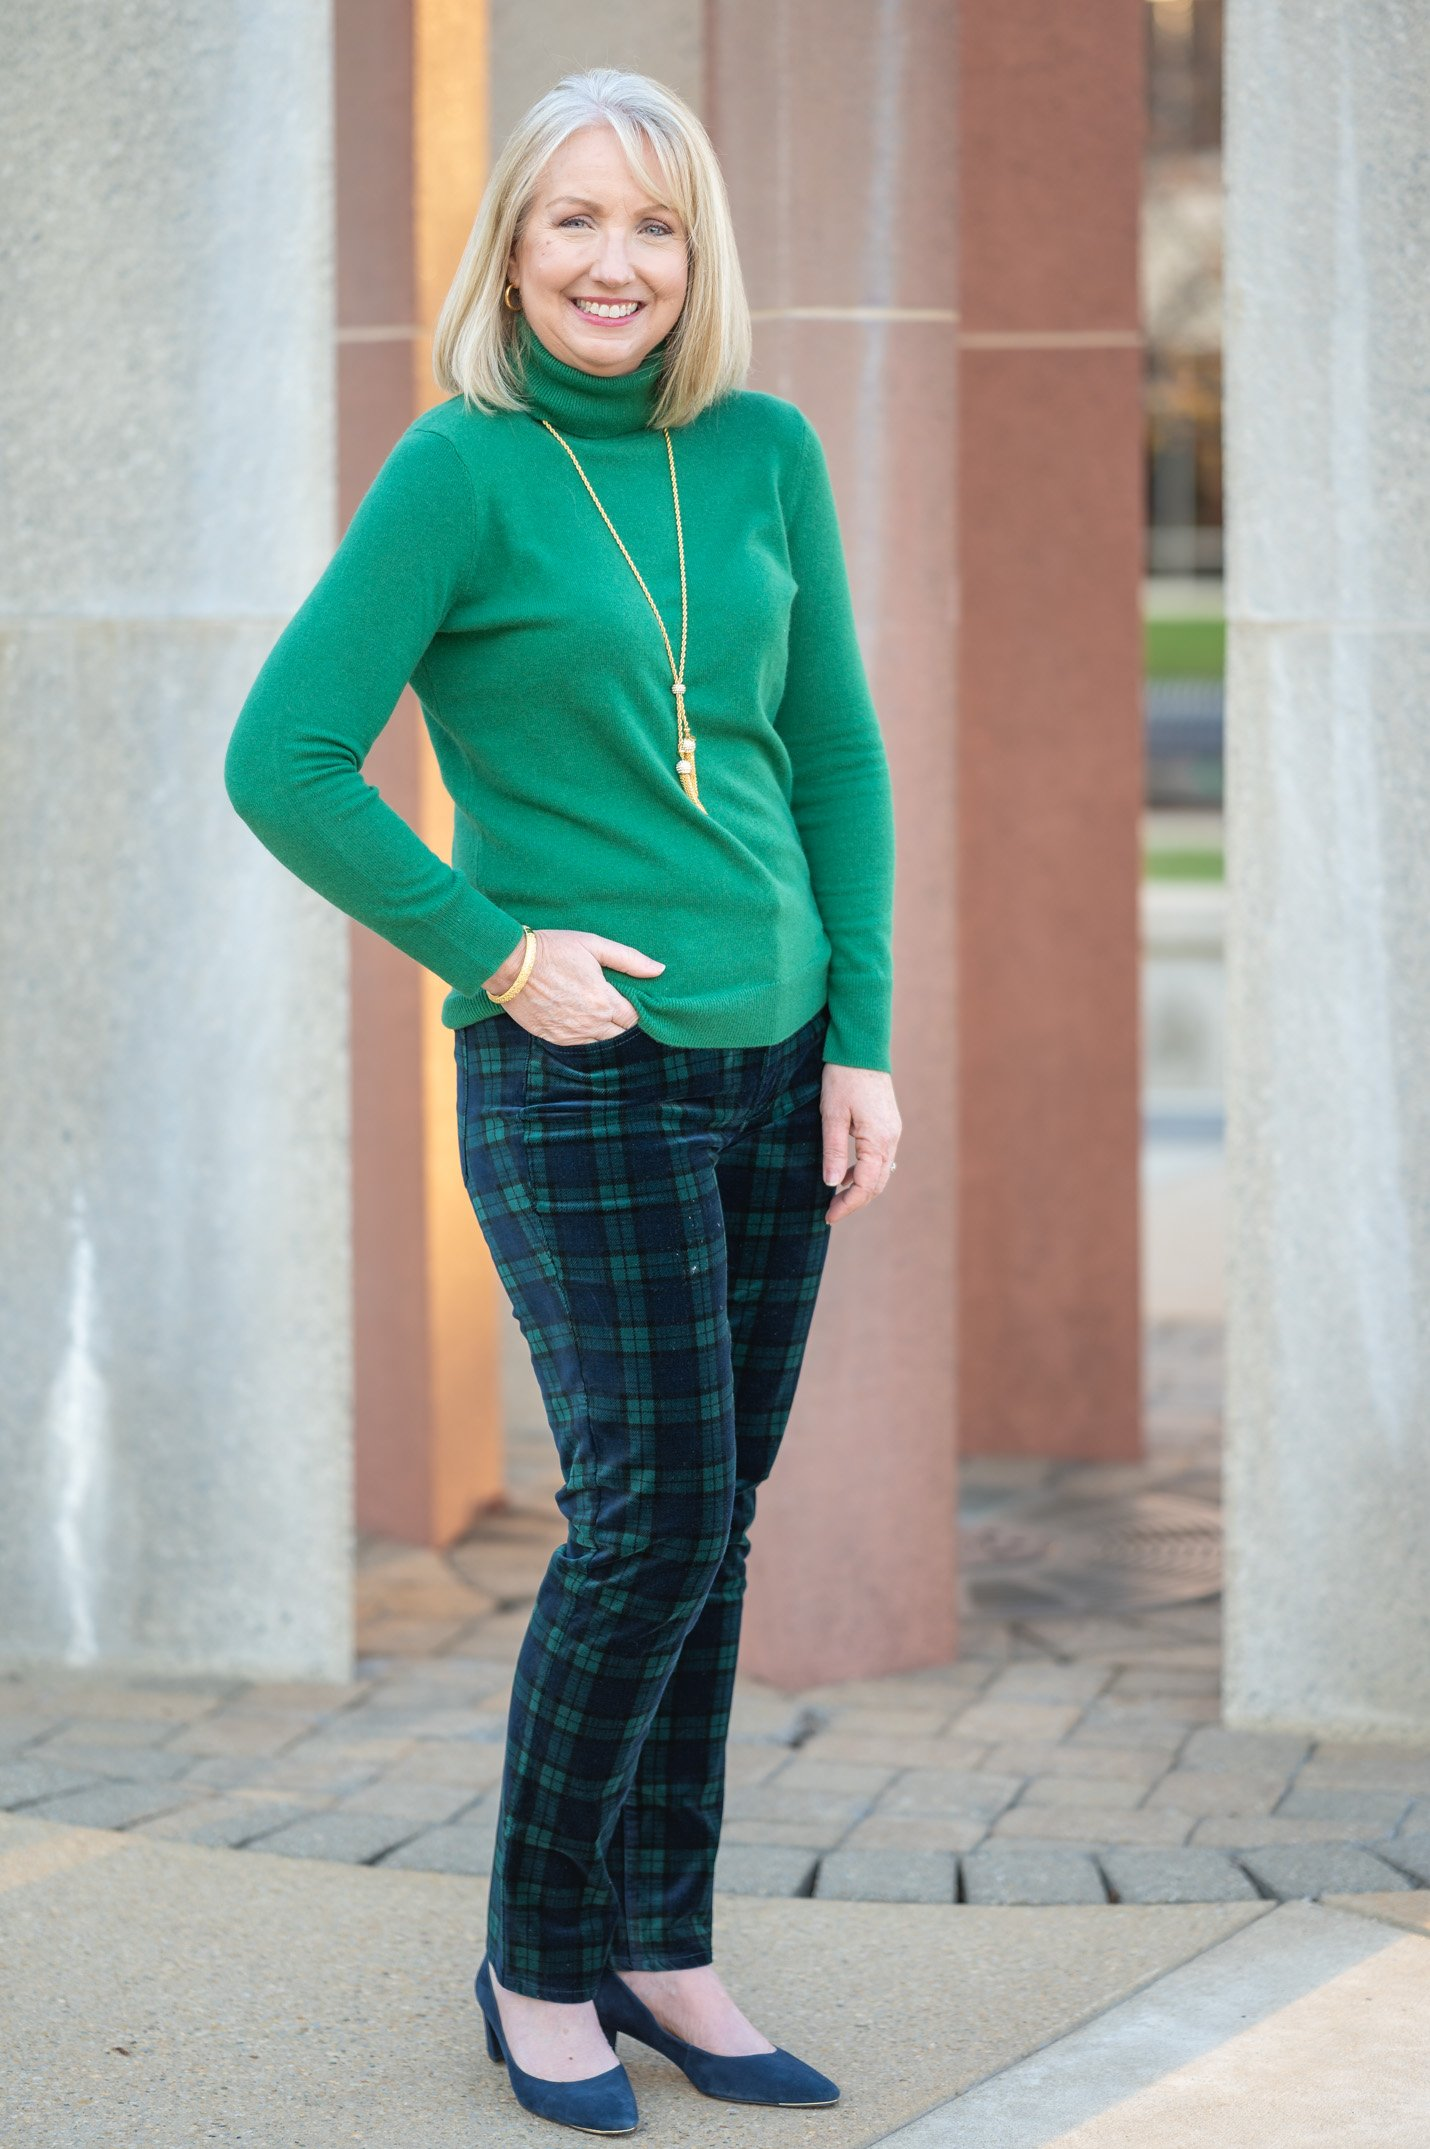 Tartan Plaid Outfit for the Holidays